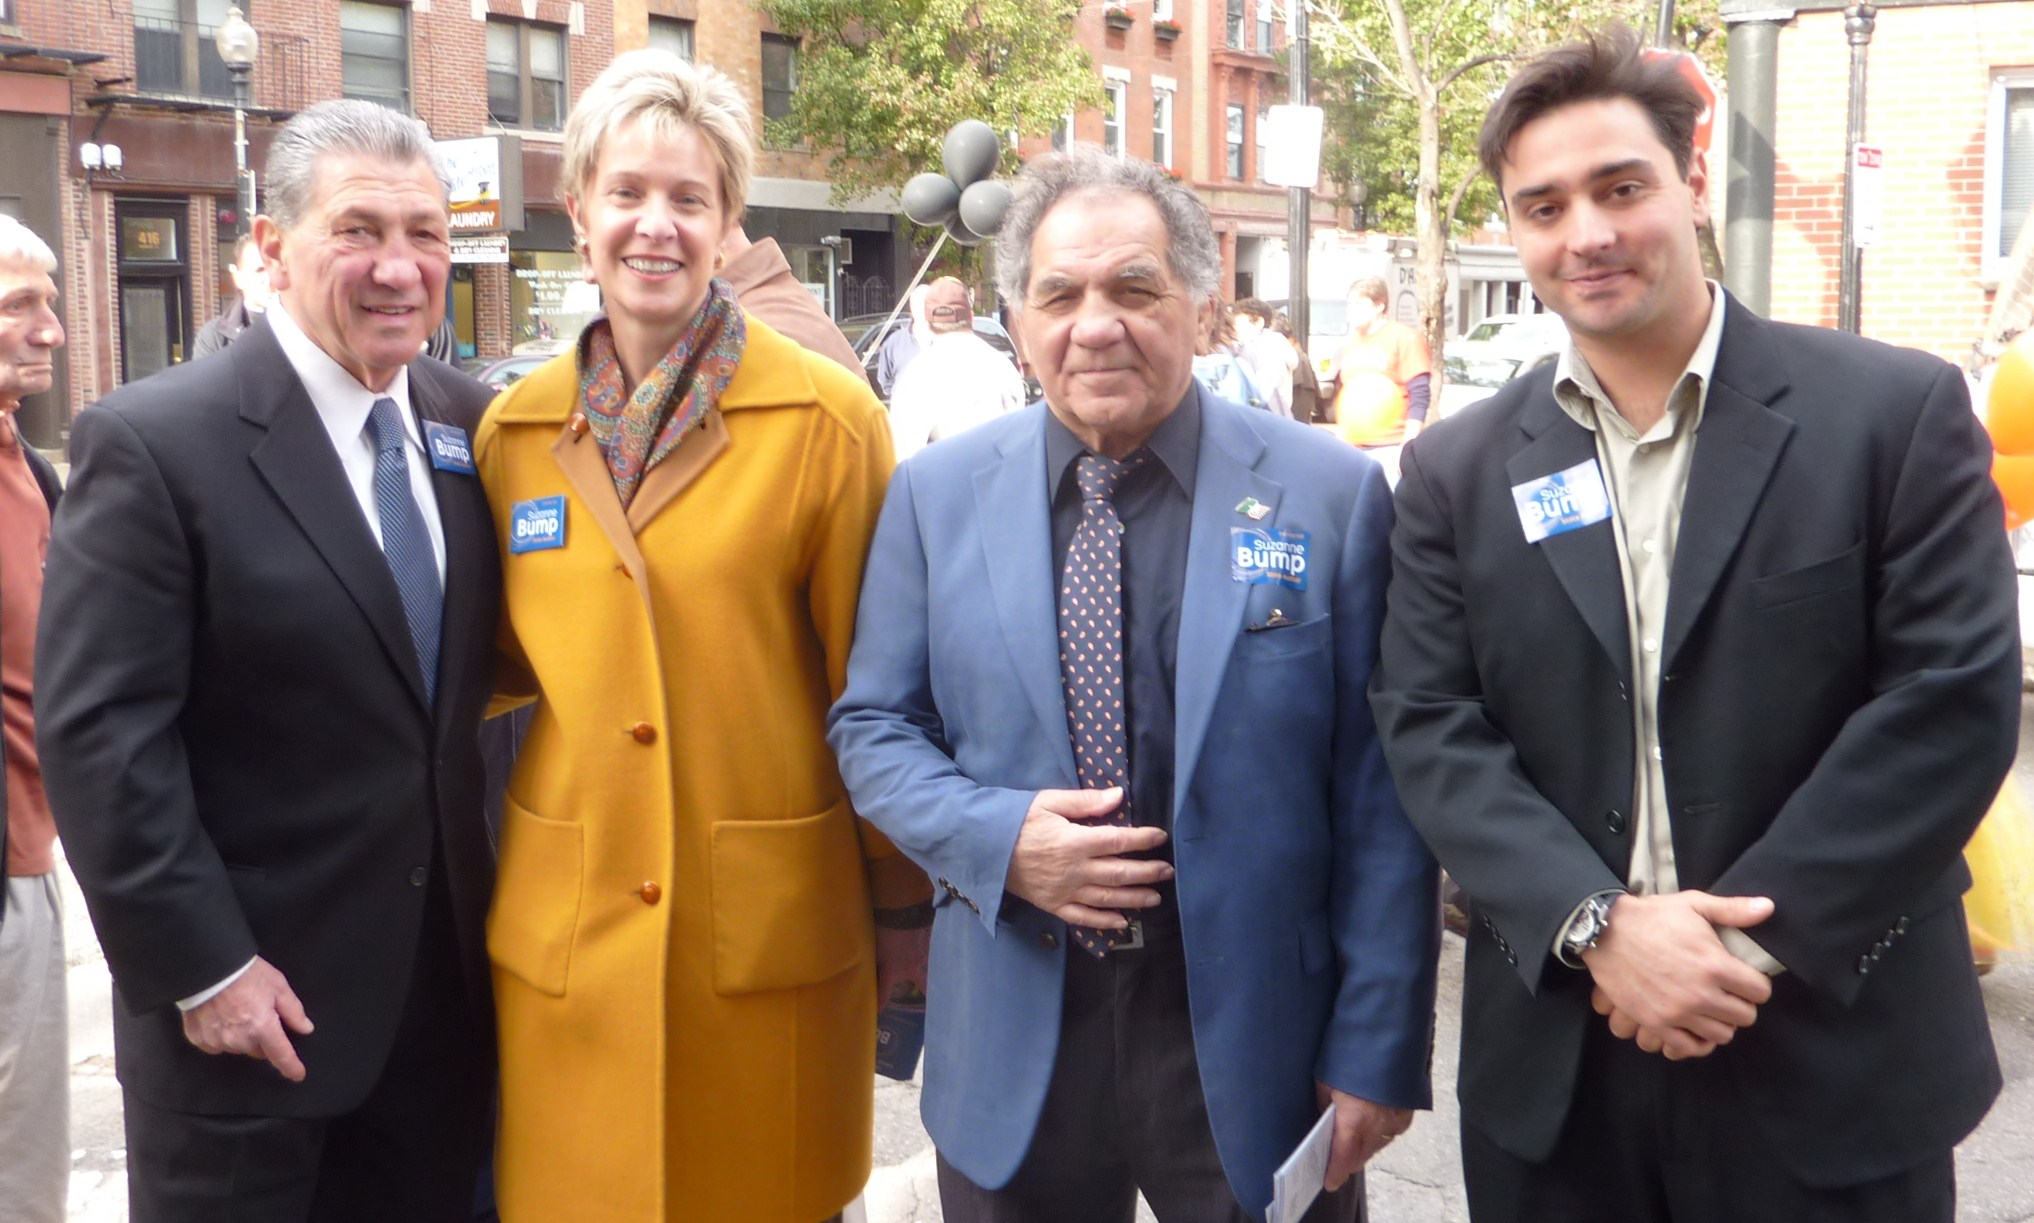 (Left to right) State Auditor Joe DeNucci, State Auditor Candidate Suzzane Bump, Boxing Champ Tony Demarco and Mike Seifried on Hanover Street.